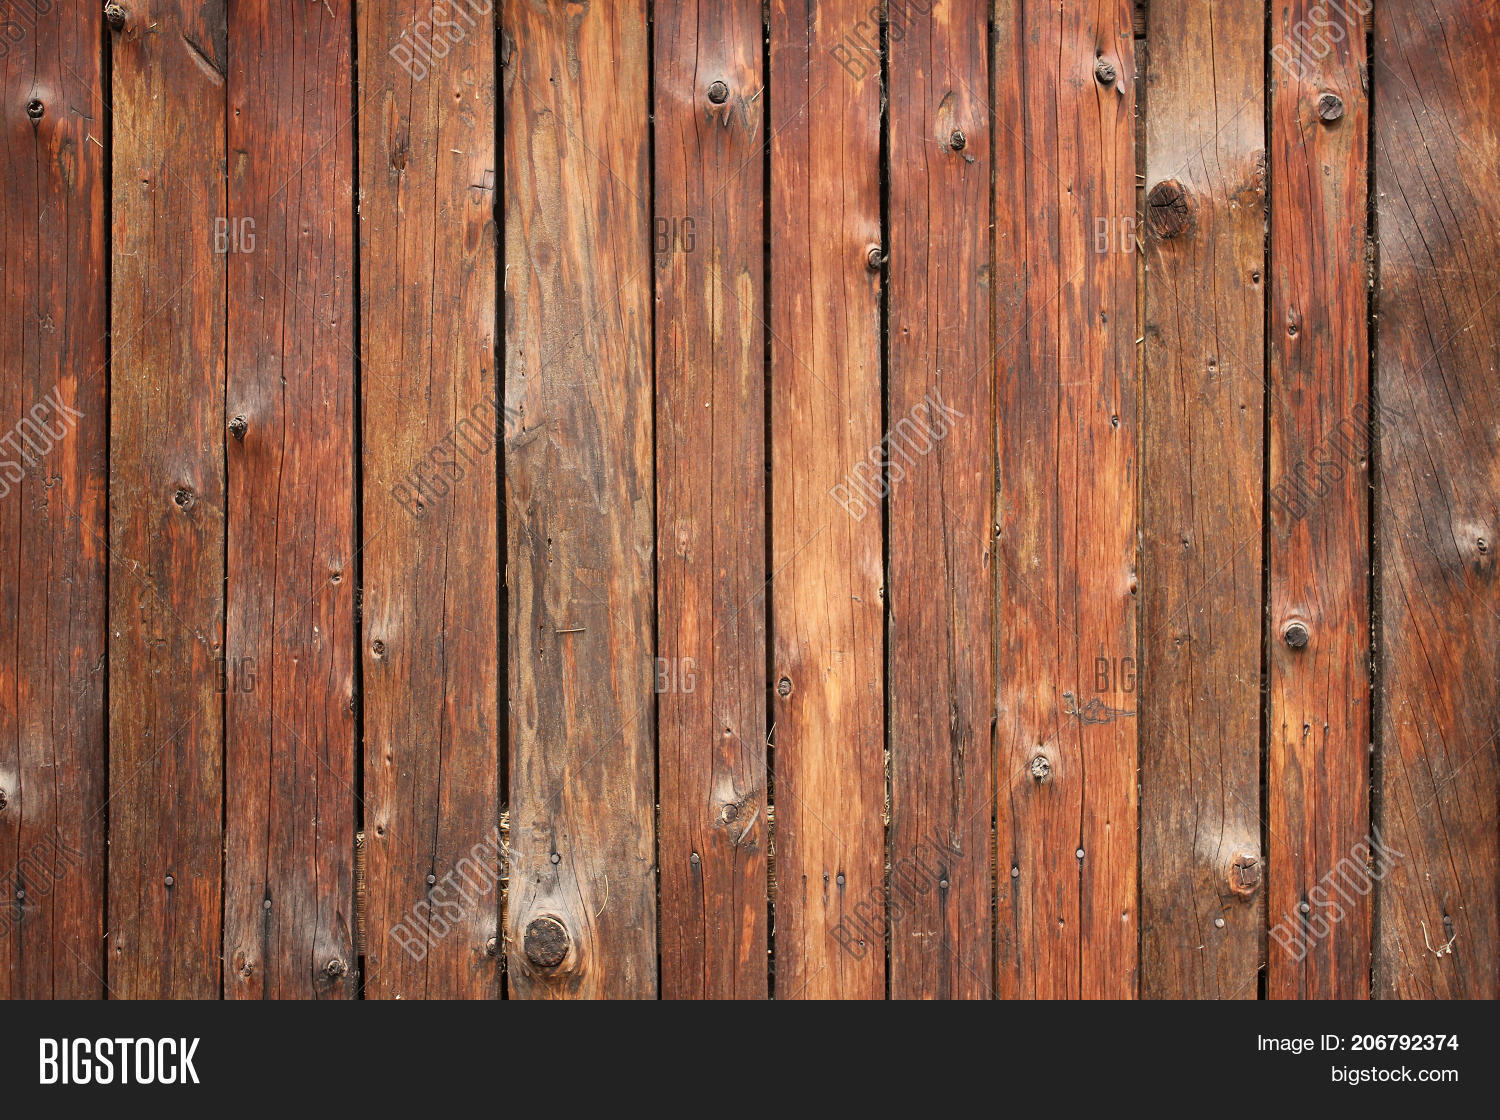 Vertical Wood Slat Wall Vertical Barn Wooden Image Photo Free Trial Bigstock